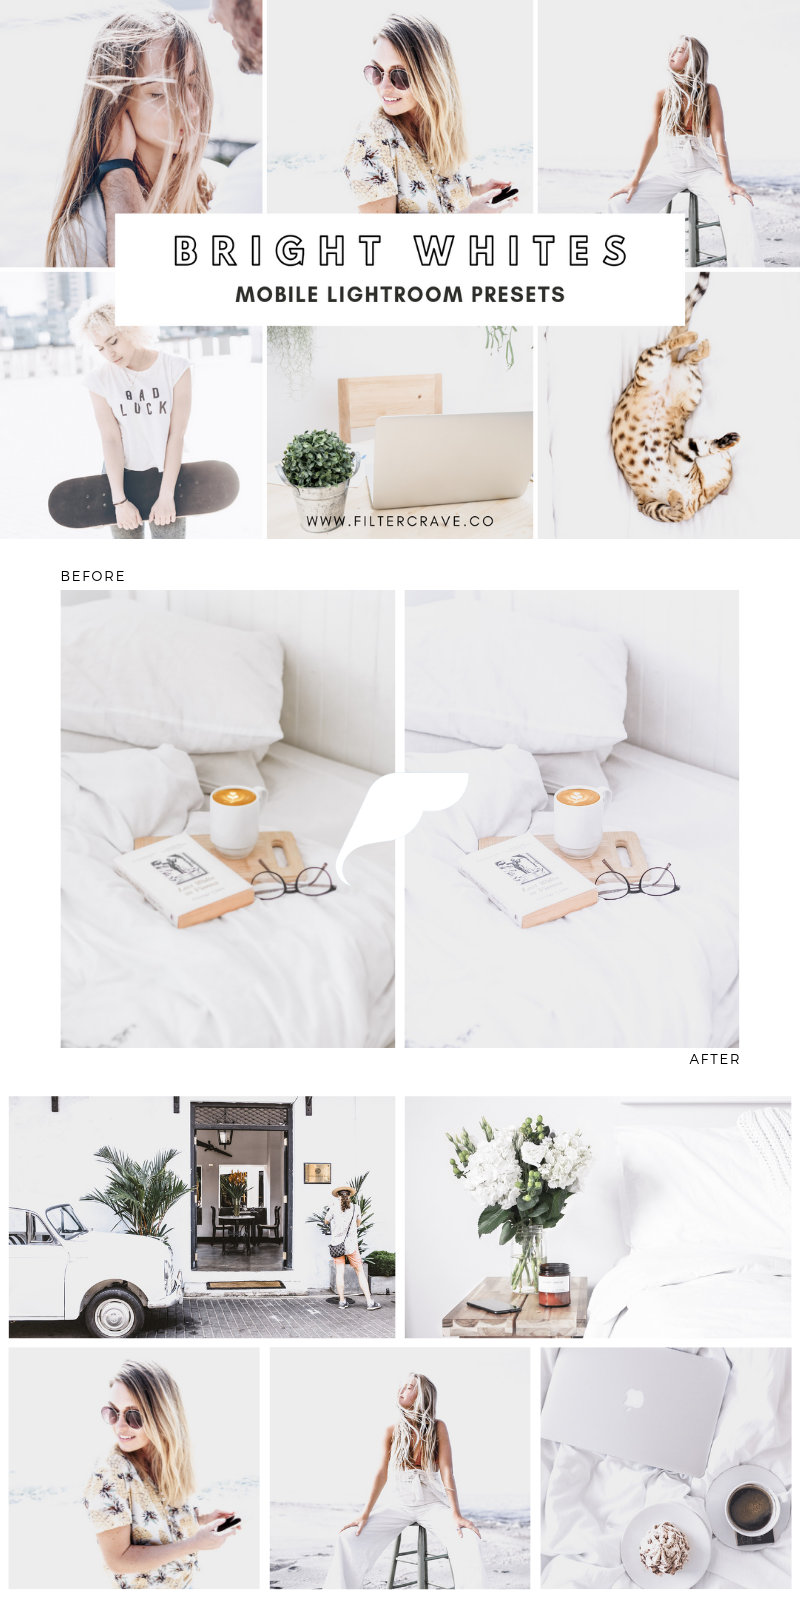 Bright WhiteS Mobile Lightroom Presets - Filtercrave Collections.png